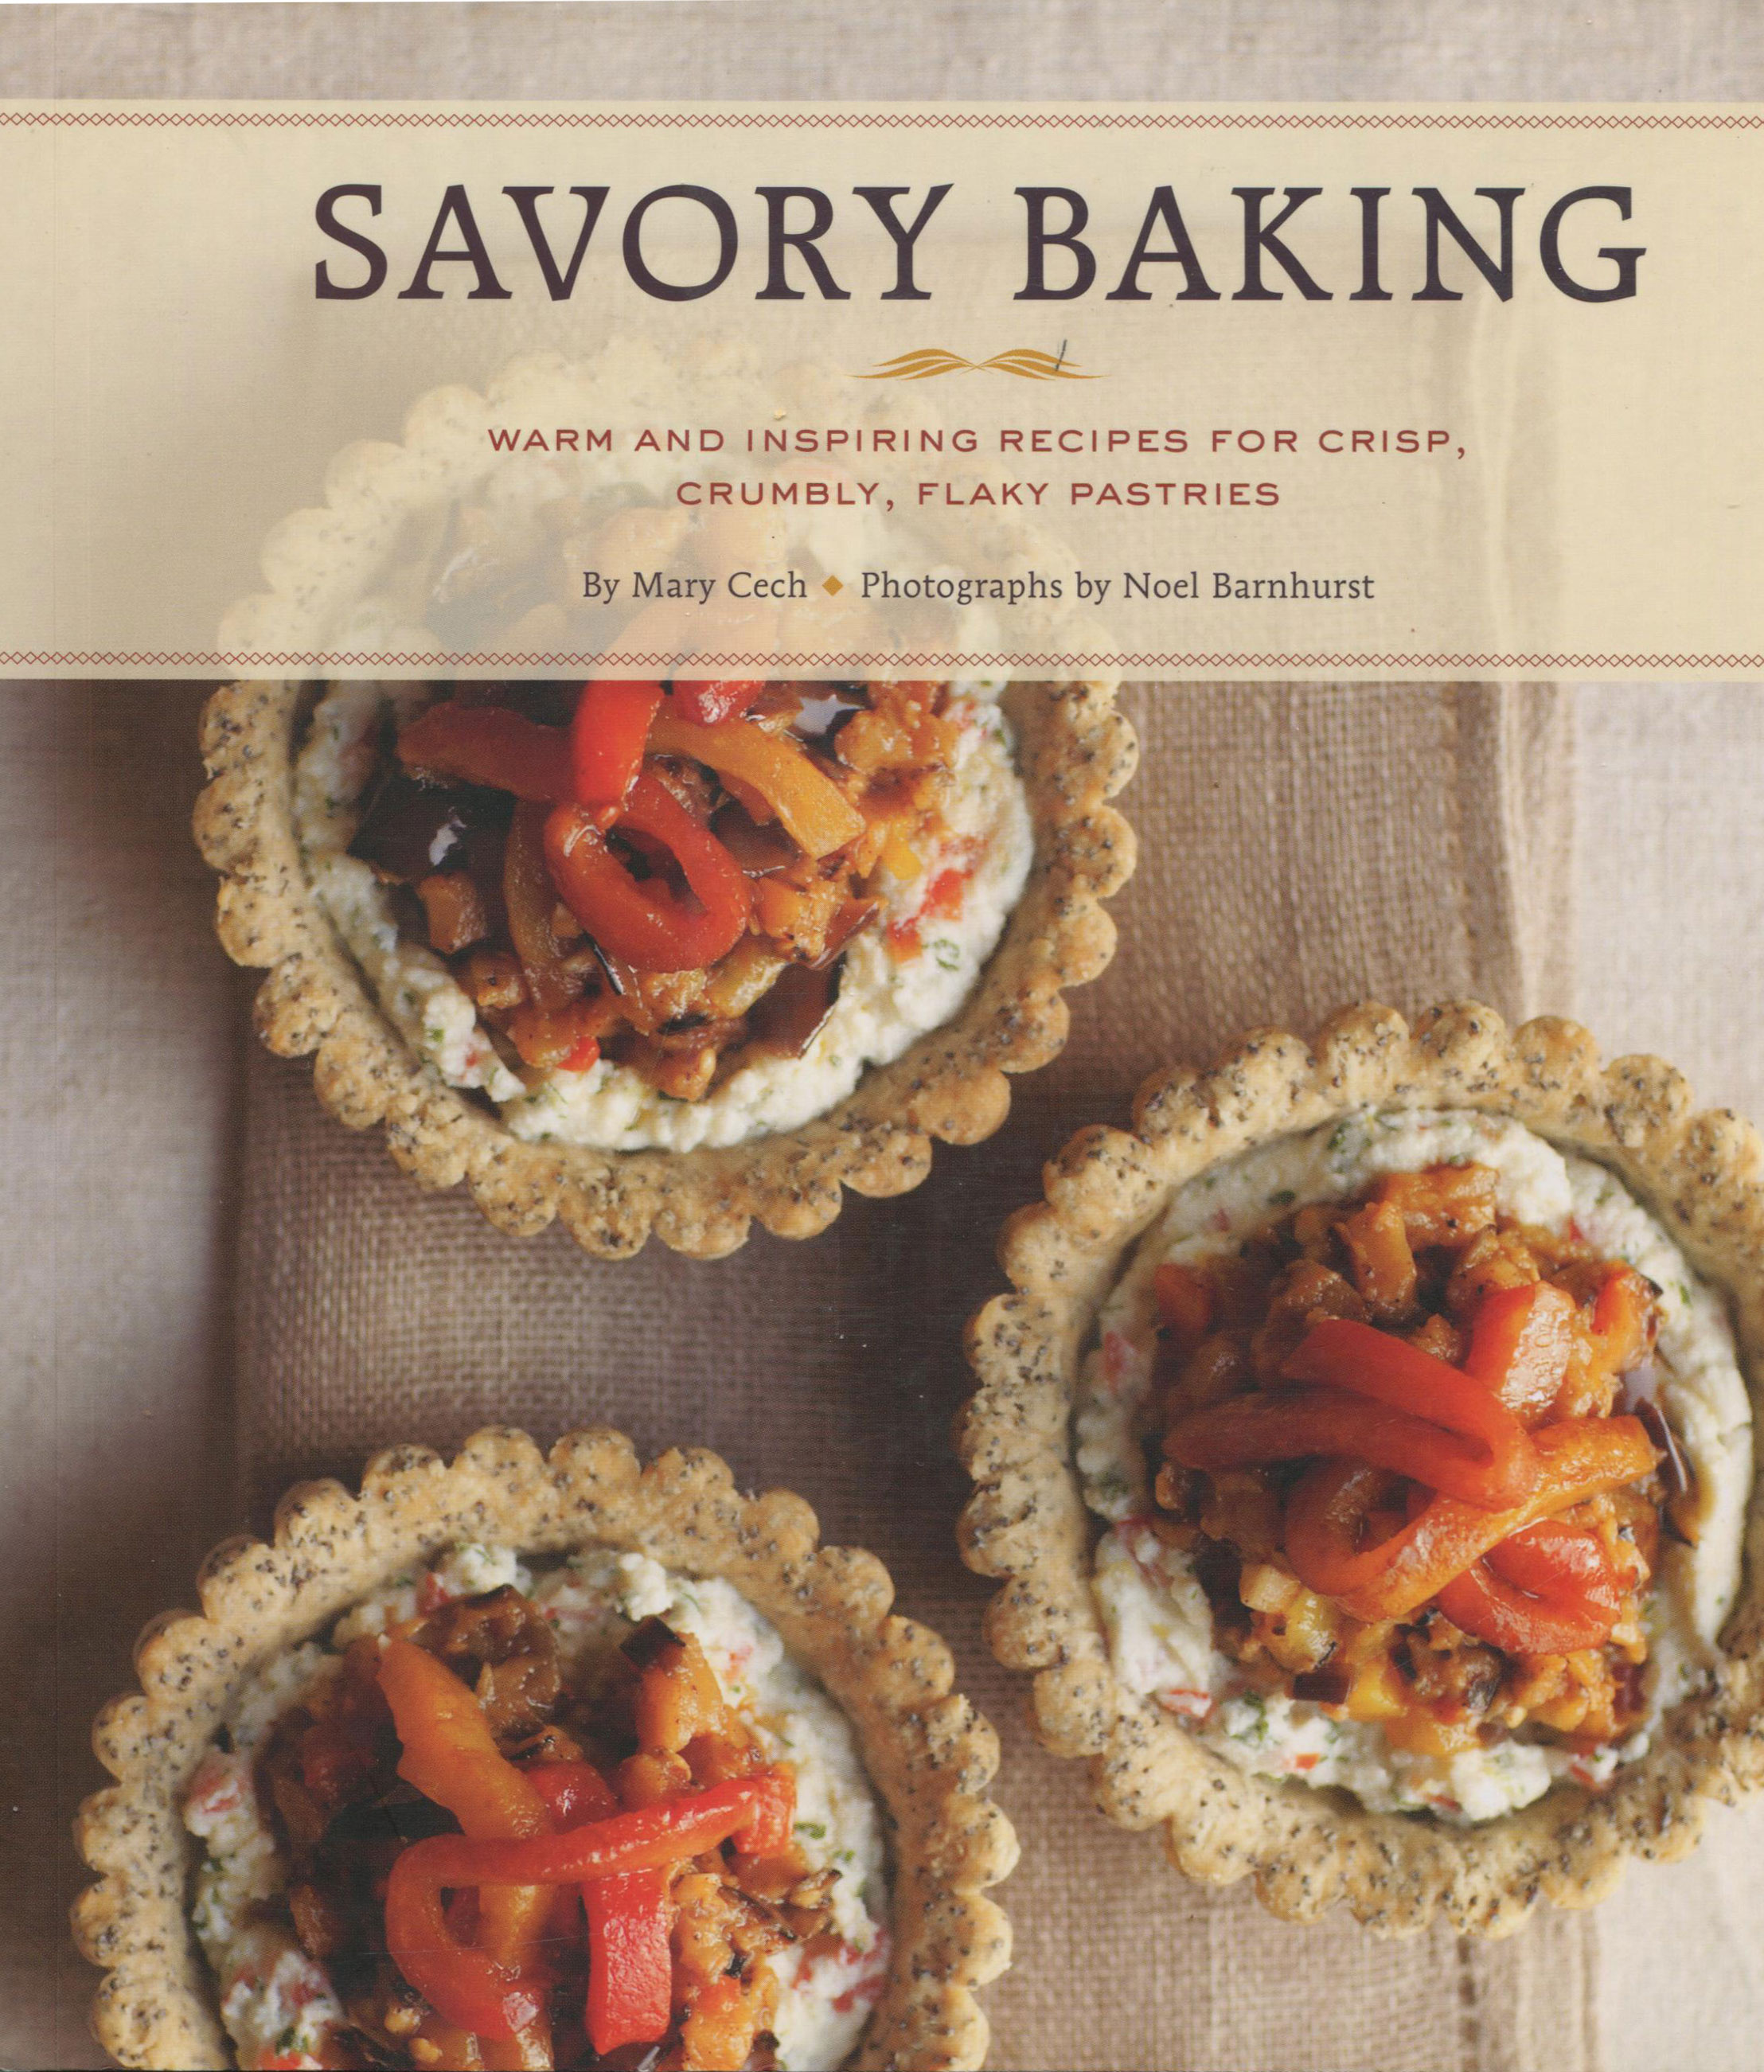 TBT Cookbook Review: Savory Baking